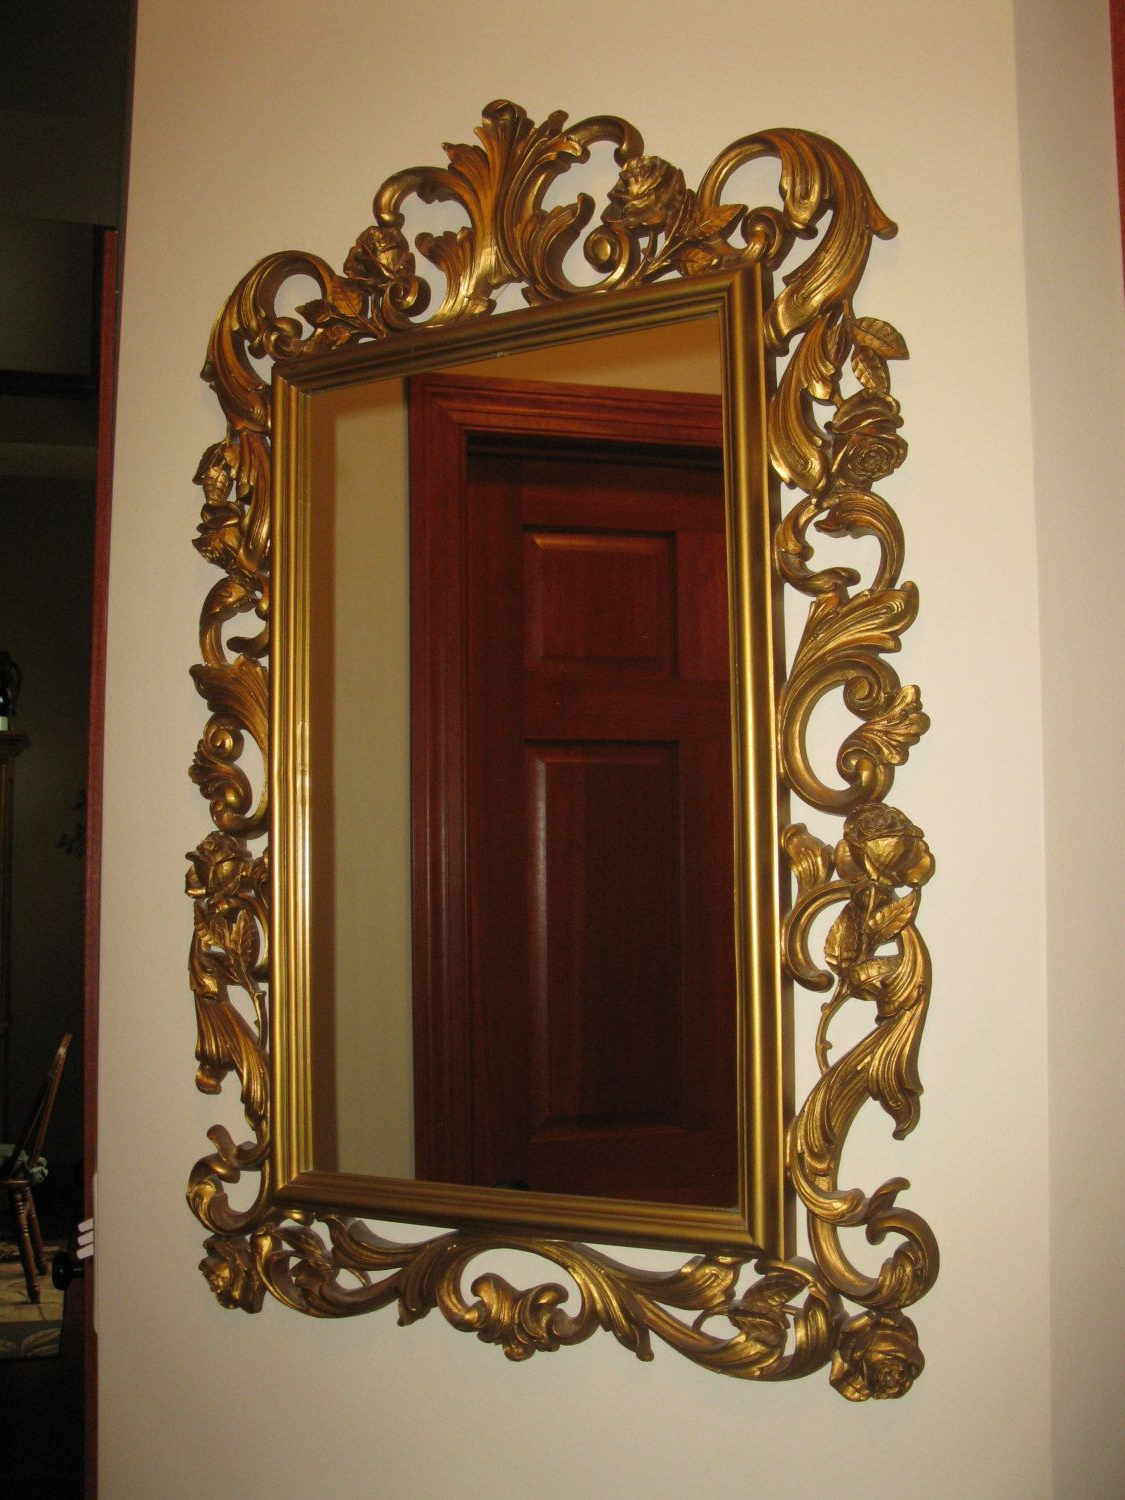 Ornate Homco Wall Mirror – Large Gold Plastic Resin For Famous Large Plastic Wall Mirrors (View 3 of 20)